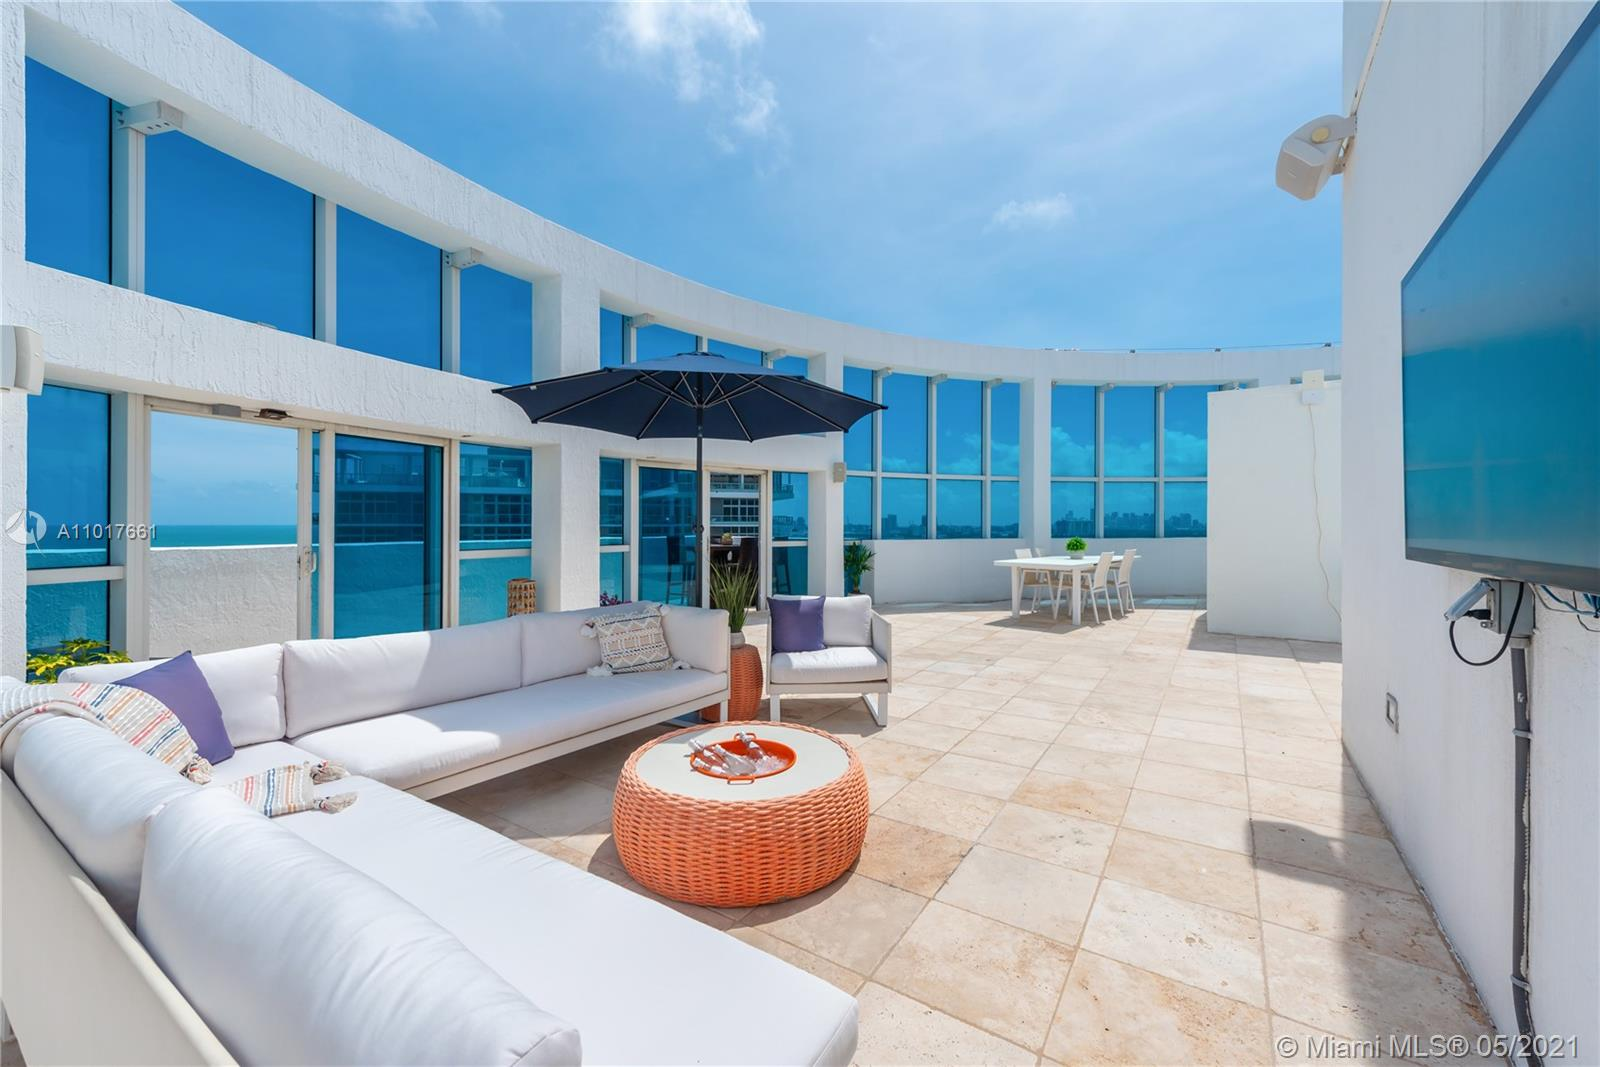 Largest private rooftop at the Mosaic! Impeccable corner 4 bedroom, 4 bathroom rare penthouse gem at the Mosaic in Miami Beach. This large furnished unit boasts a split floor plan with a den/family room that converts to a 5th bedroom. Watch the sunrise and sunset from your private rooftop and 4 balconies, featuring stunning ocean, intracoastal and city views. The rooftop terrace is very spacious for entertaining and overlooks the entire city. A private foyer entrance leads to an open living space with an abundance of natural light. The Mosaic offers wonderful amenities- a heated pool, beach service, gym, theater room, party room/lounge, complimentary valet, front desk concierge. 3 assigned parking spaces. Come explore this exceptional penthouse!